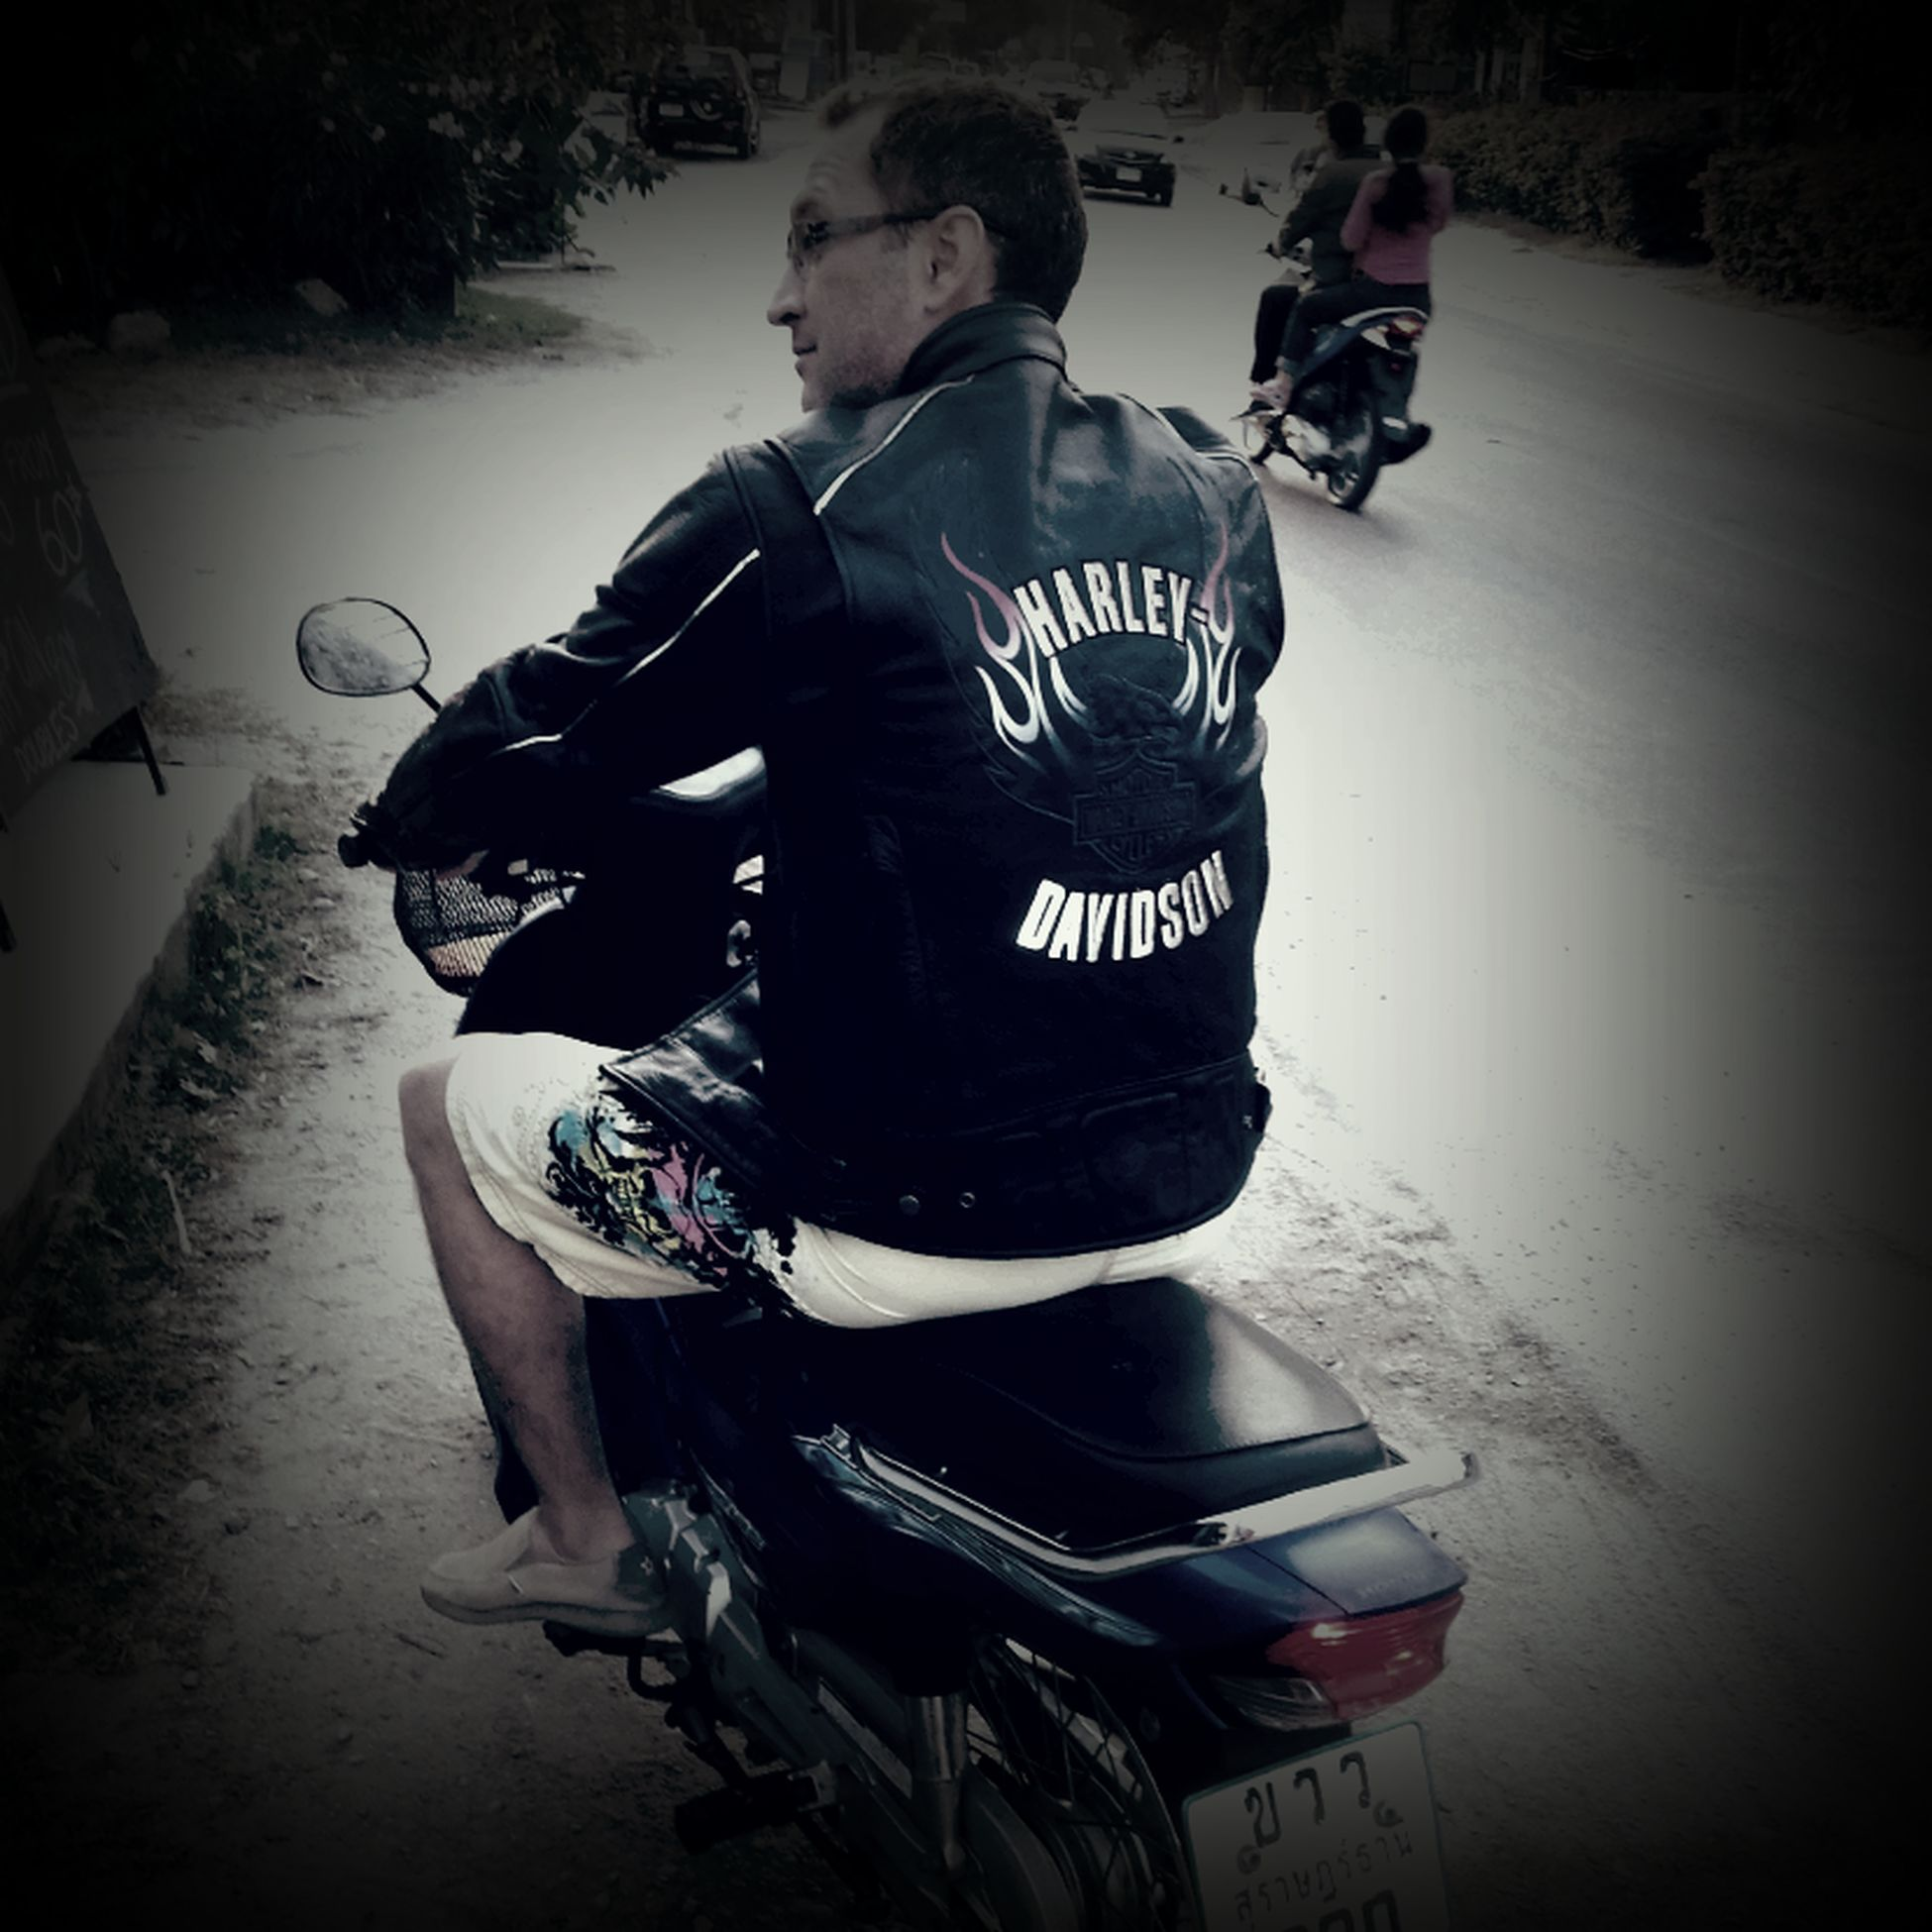 ... now only left to buy my ride ... Harley Davidson